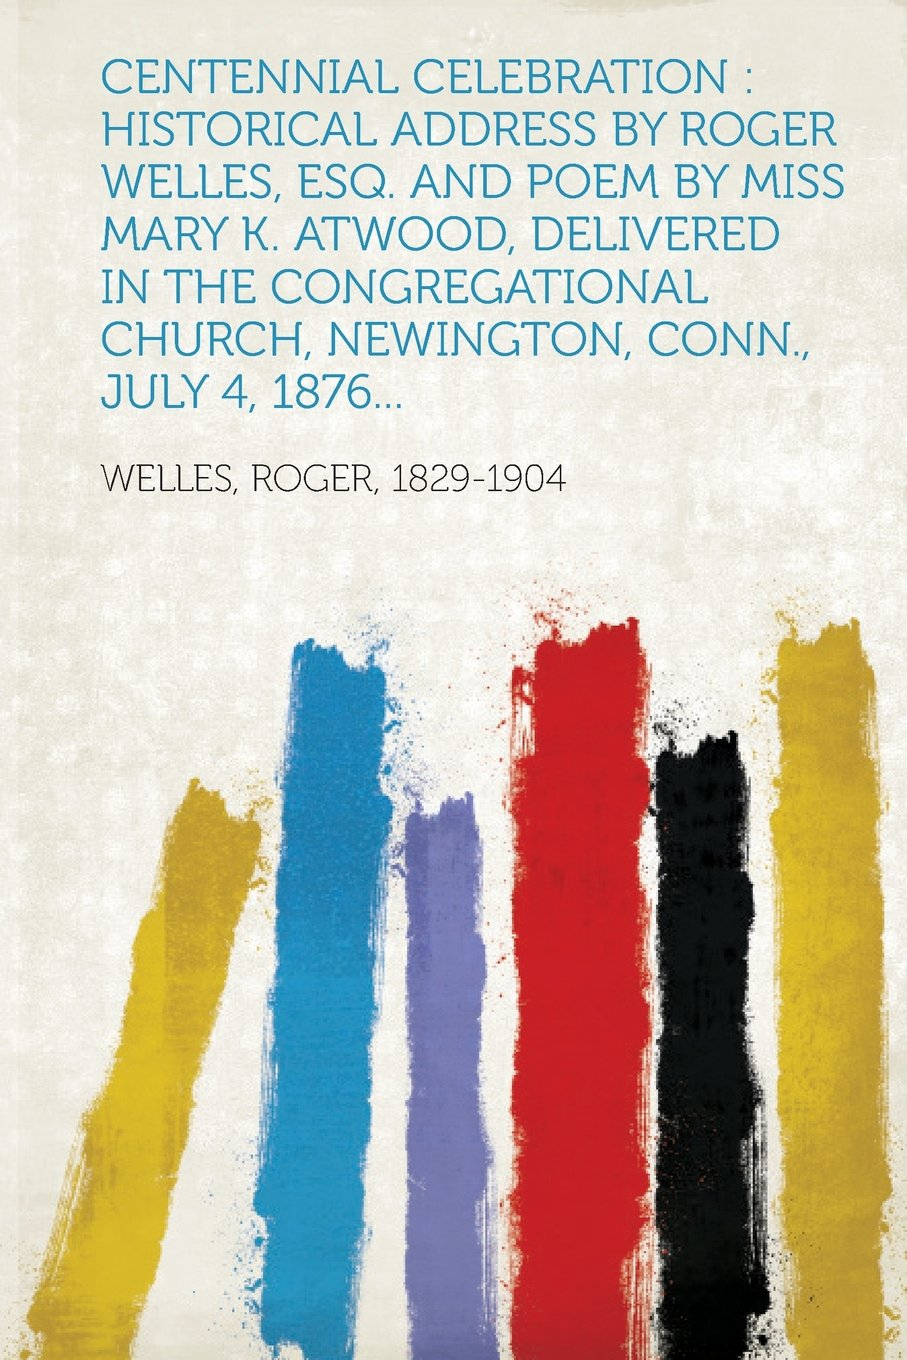 Download Centennial Celebration: Historical Address by Roger Welles, Esq. and Poem by Miss Mary K. Atwood, Delivered in the Congregational Church, Newi pdf